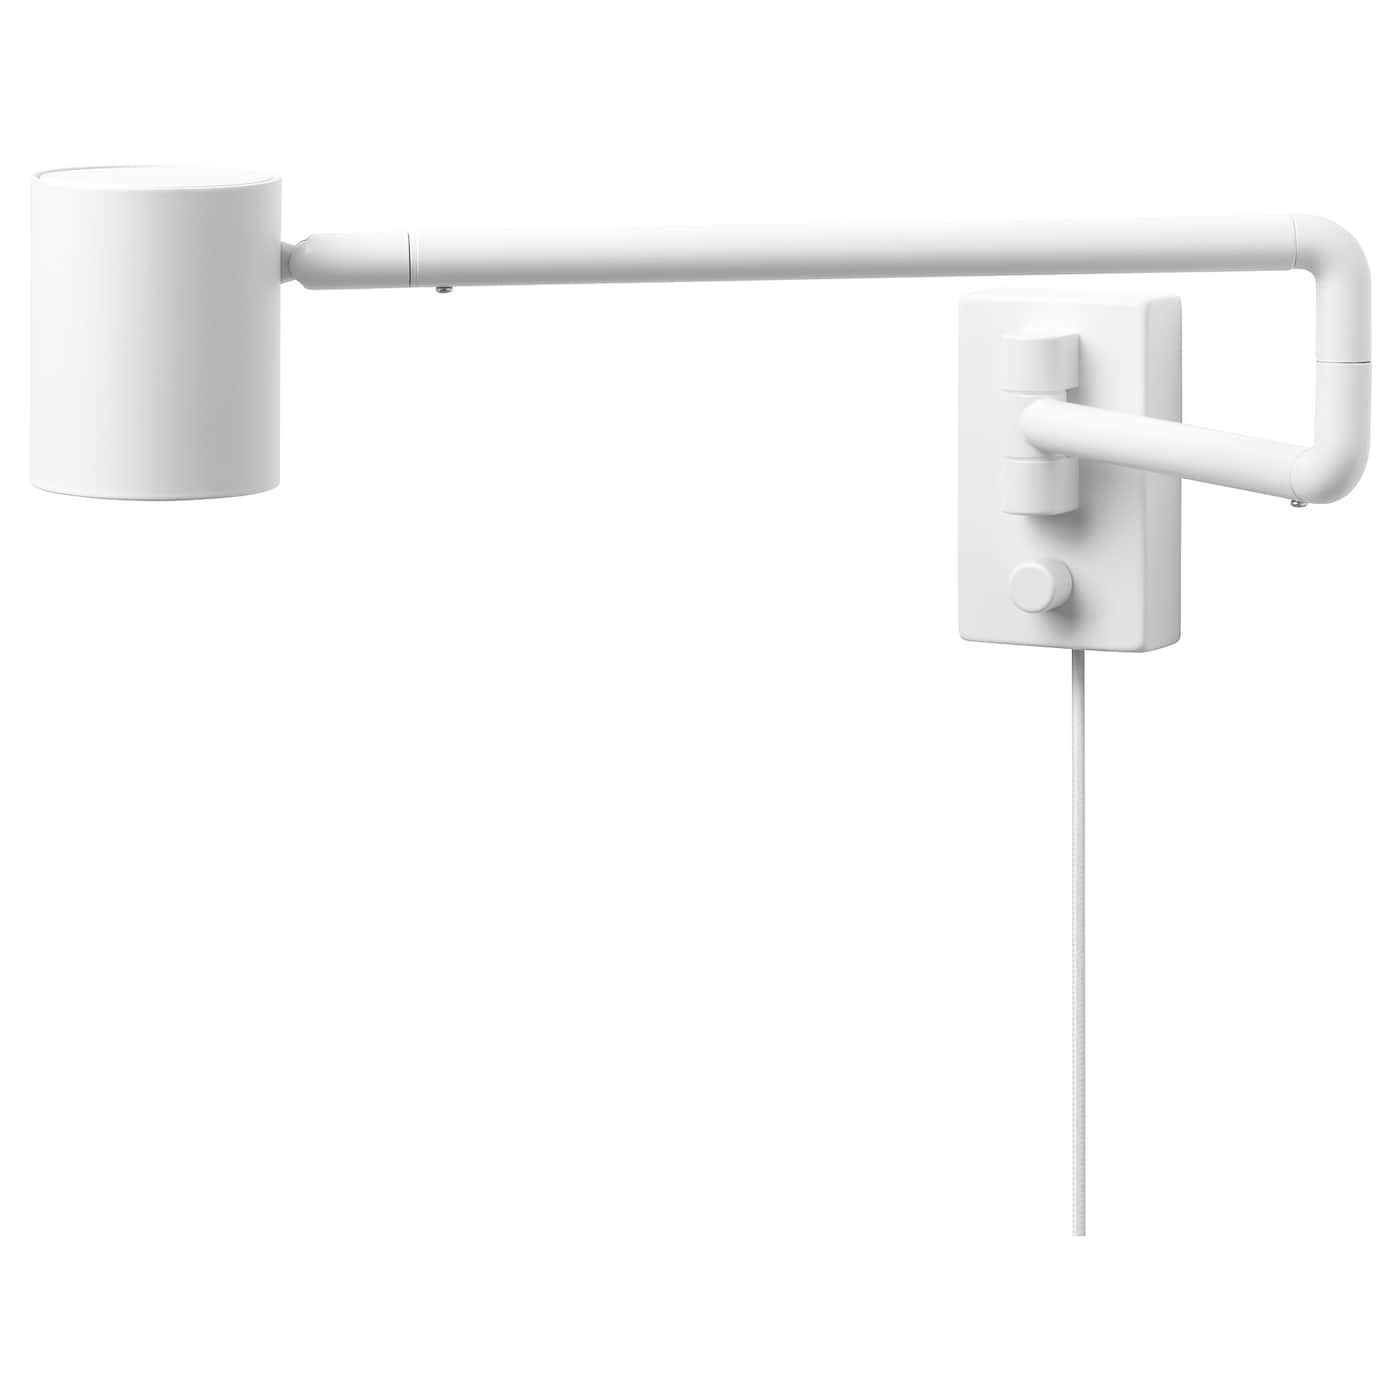 Https Www Ikea Com No No P Nymane Vegglampe Med Svingarm Hvit 40356908 Ikea Wall Lamp Black Wall Lamps Lamp